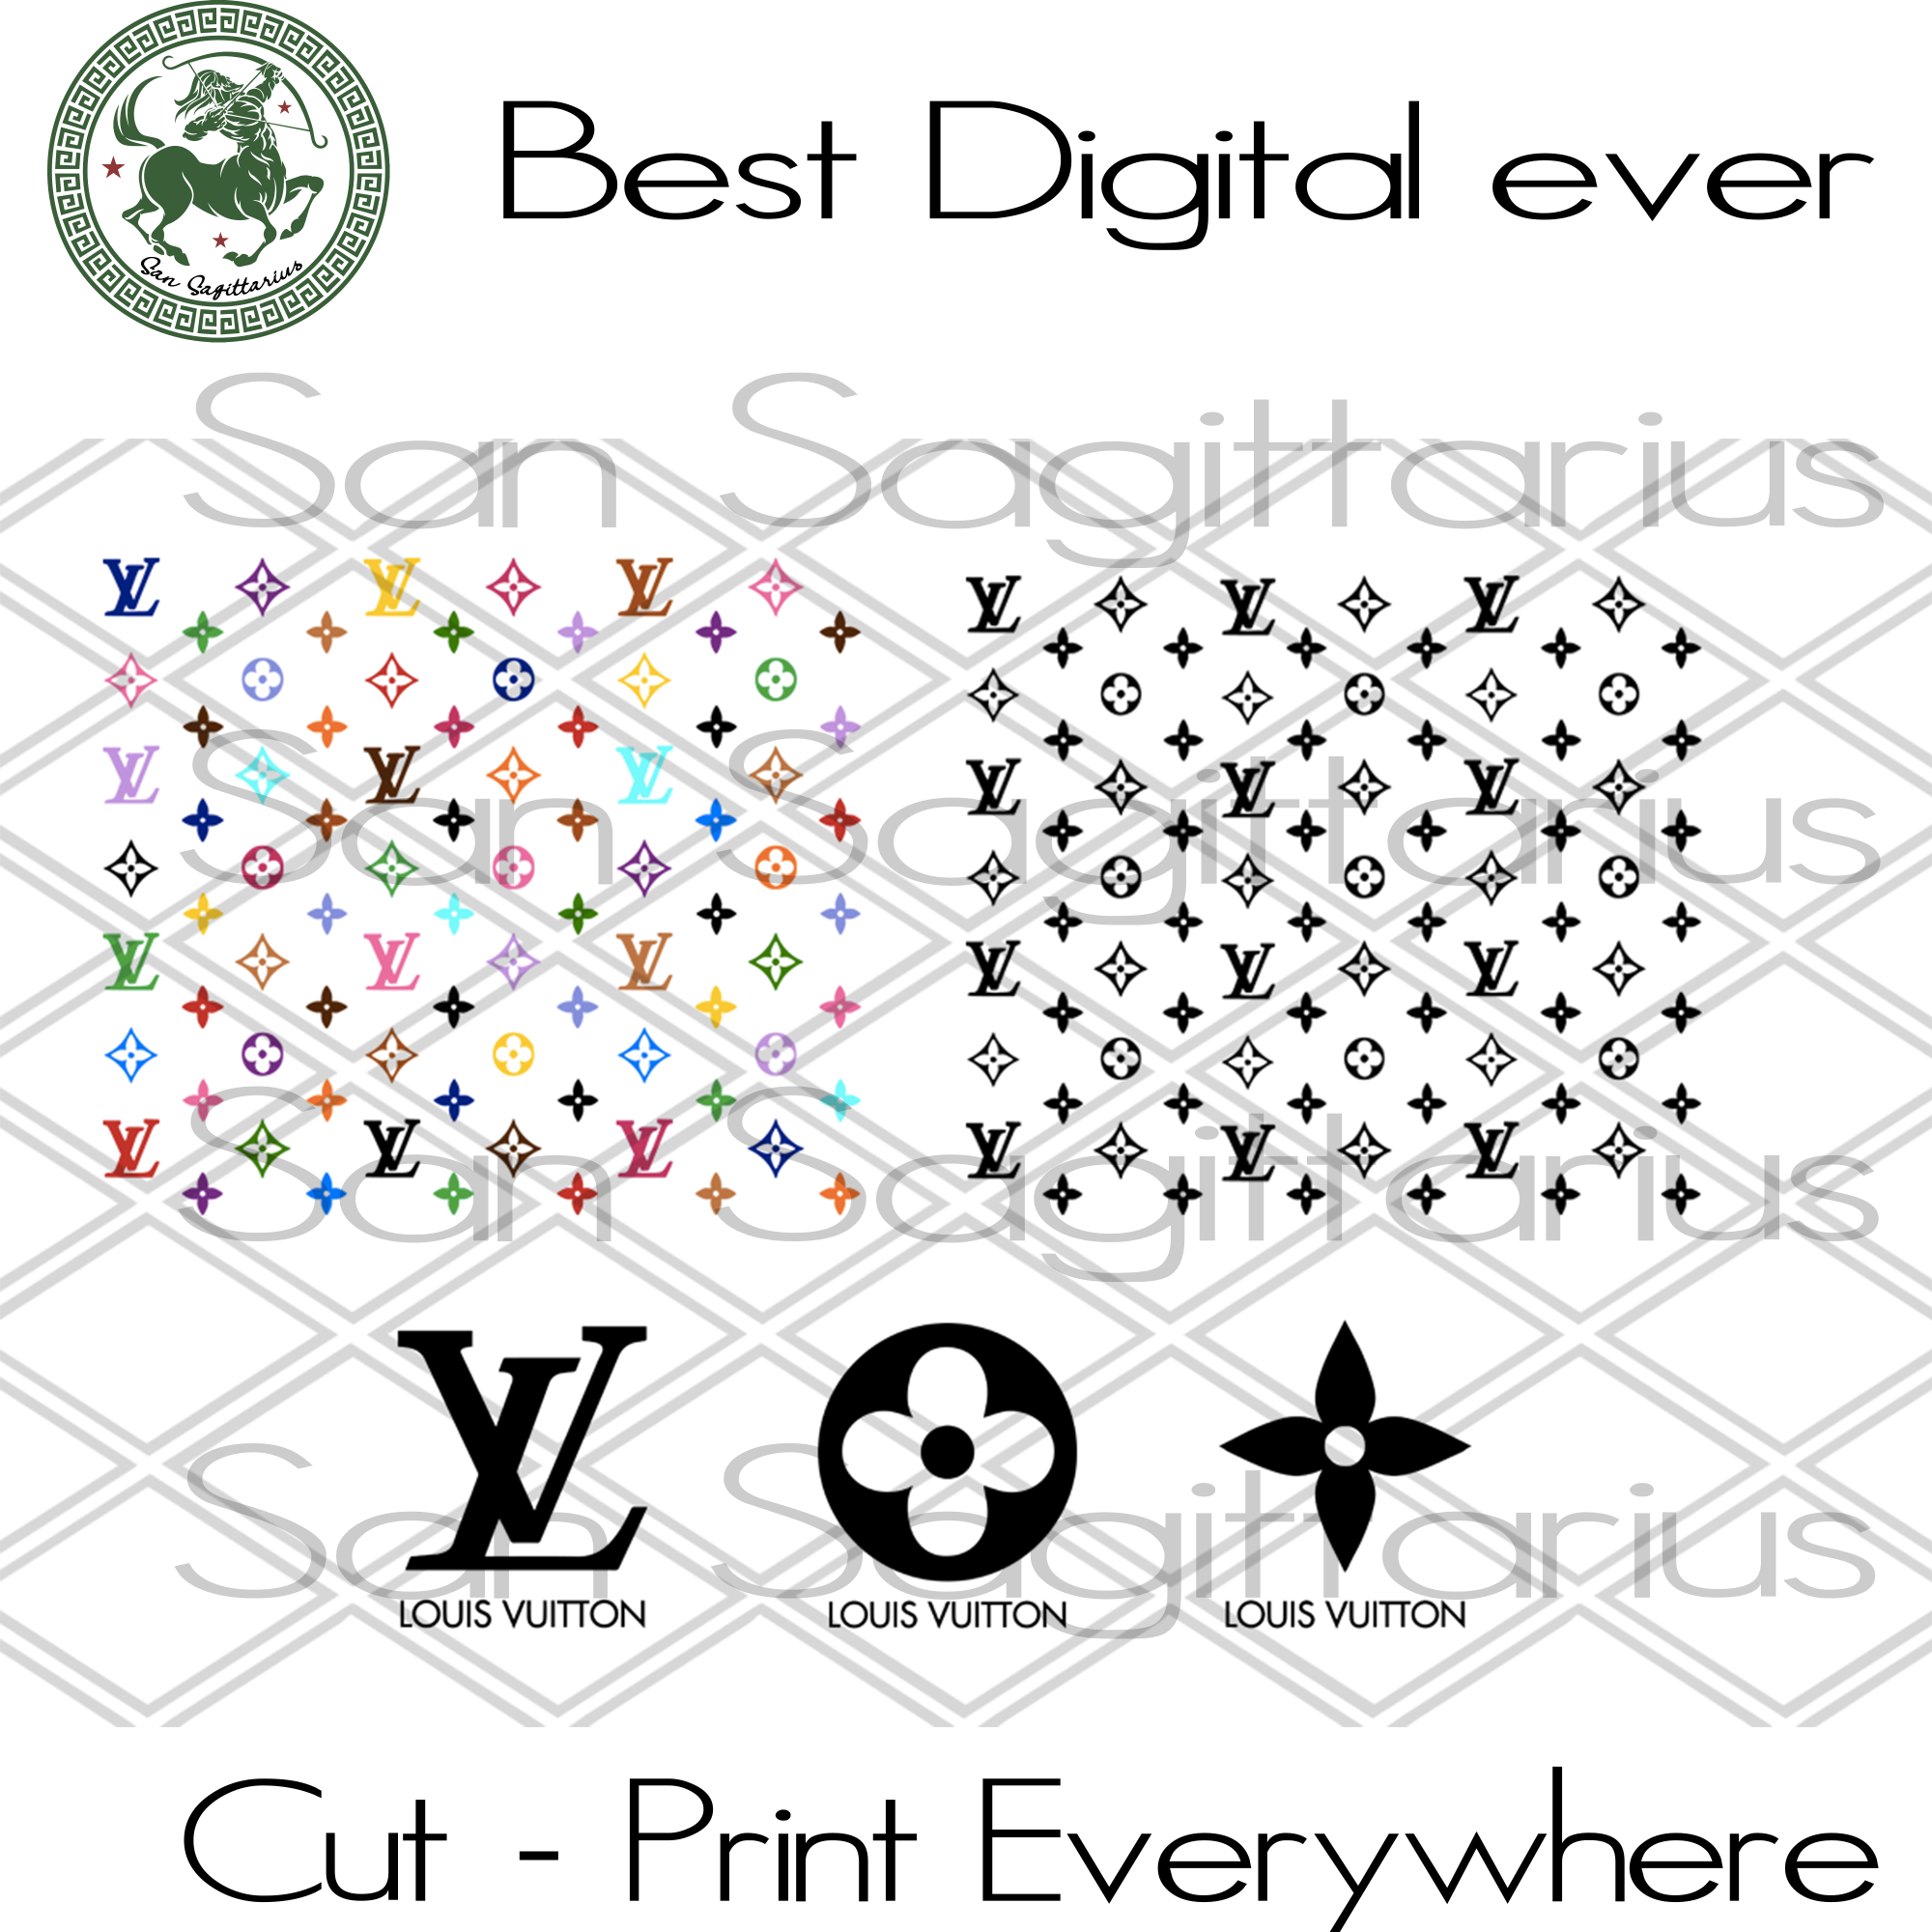 Louis Vuitton Pattern Svg Louis Vuitton Louis Vuitton Gift Lv Bundl San Sagittarius